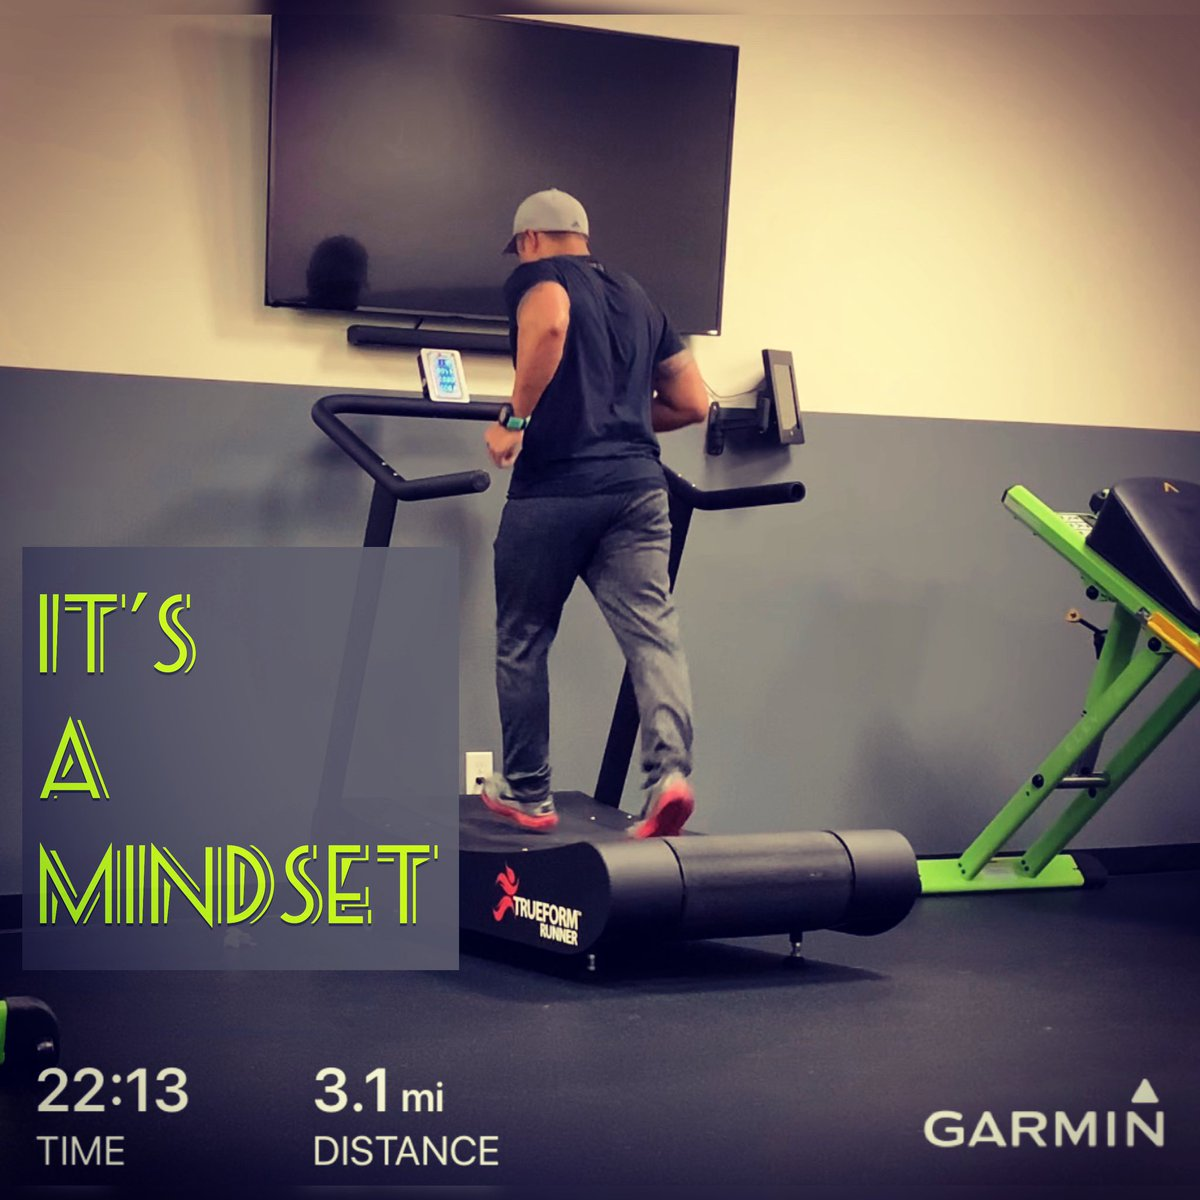 DAY 2: GET IT DONE! Every day is a new day, but if you put your mind to it, it will get better and better.   YOU ARE CAPABLE OF ANYTHING!  #motivate #running #challenge #runningto100 #runningstreak #trueform #trueformrunner